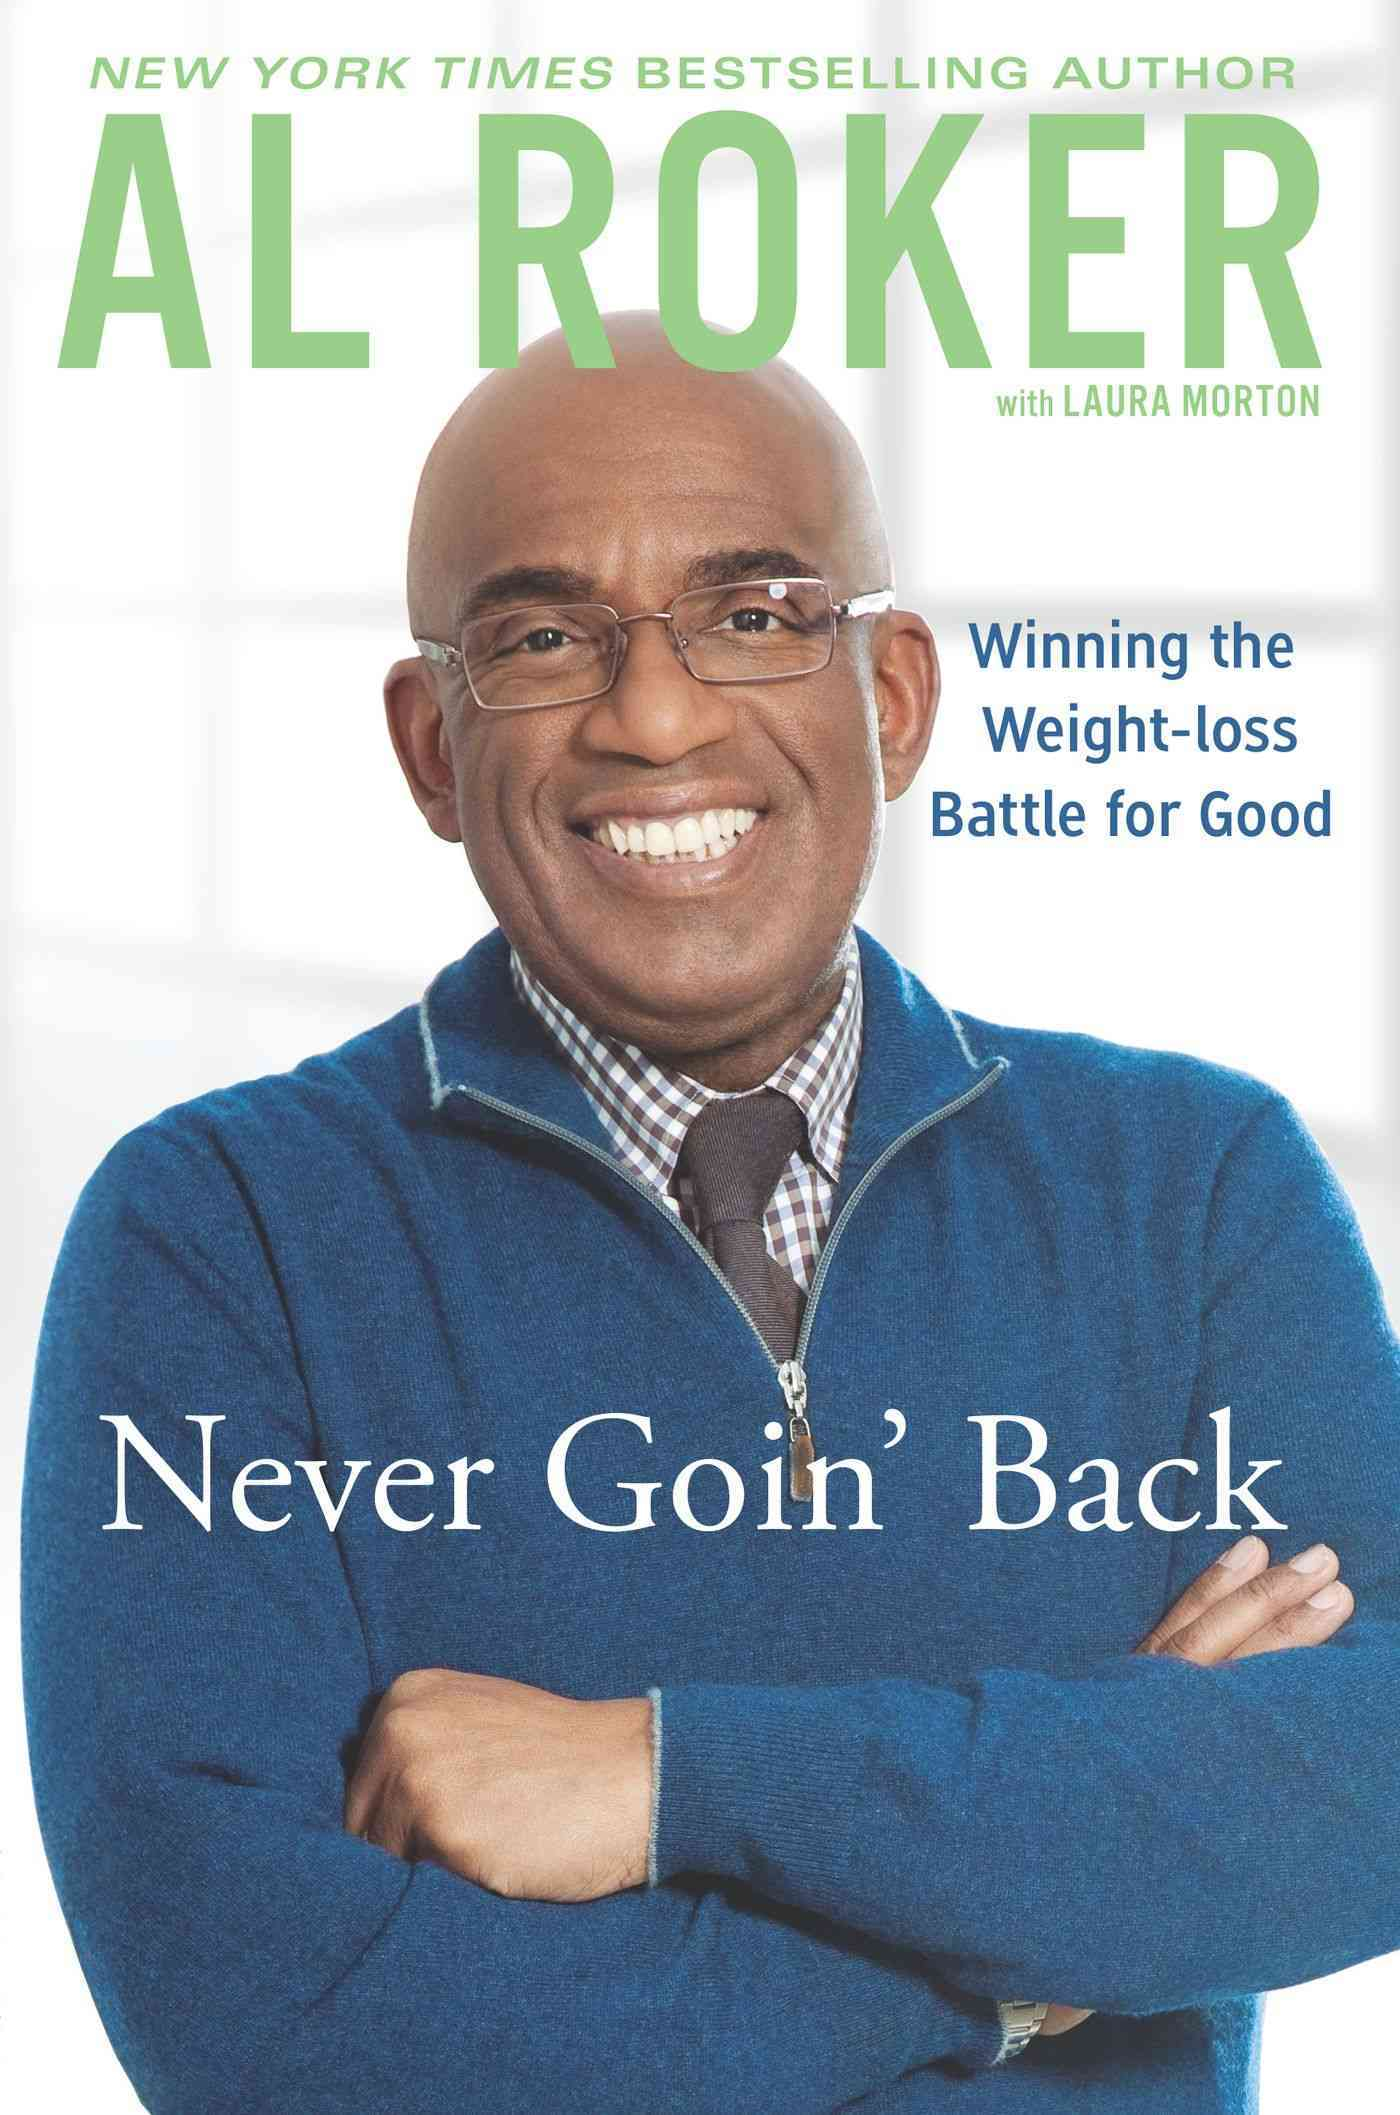 Never Goin' Back: Winning the Weight-Loss Battle for Good (Hardcover)